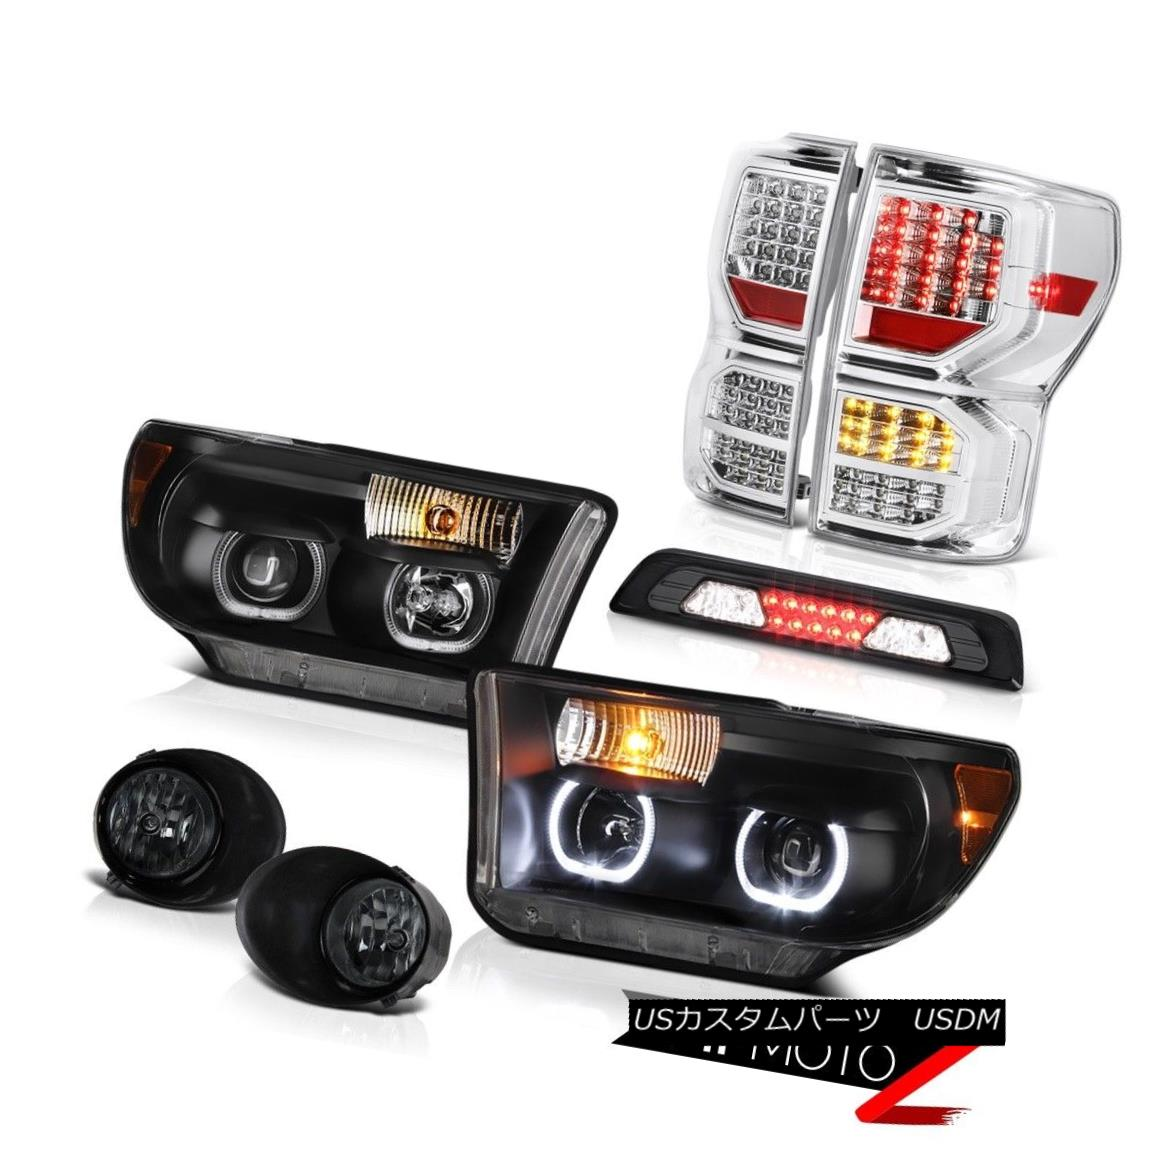 テールライト 07-13 Toyota Tundra Limited Tail Brake Lights Headlights Fog High Stop Lamp SMD 07-13 Toyota Tundra LimitedテールブレーキライトヘッドライトフォグハイストップランプSMD